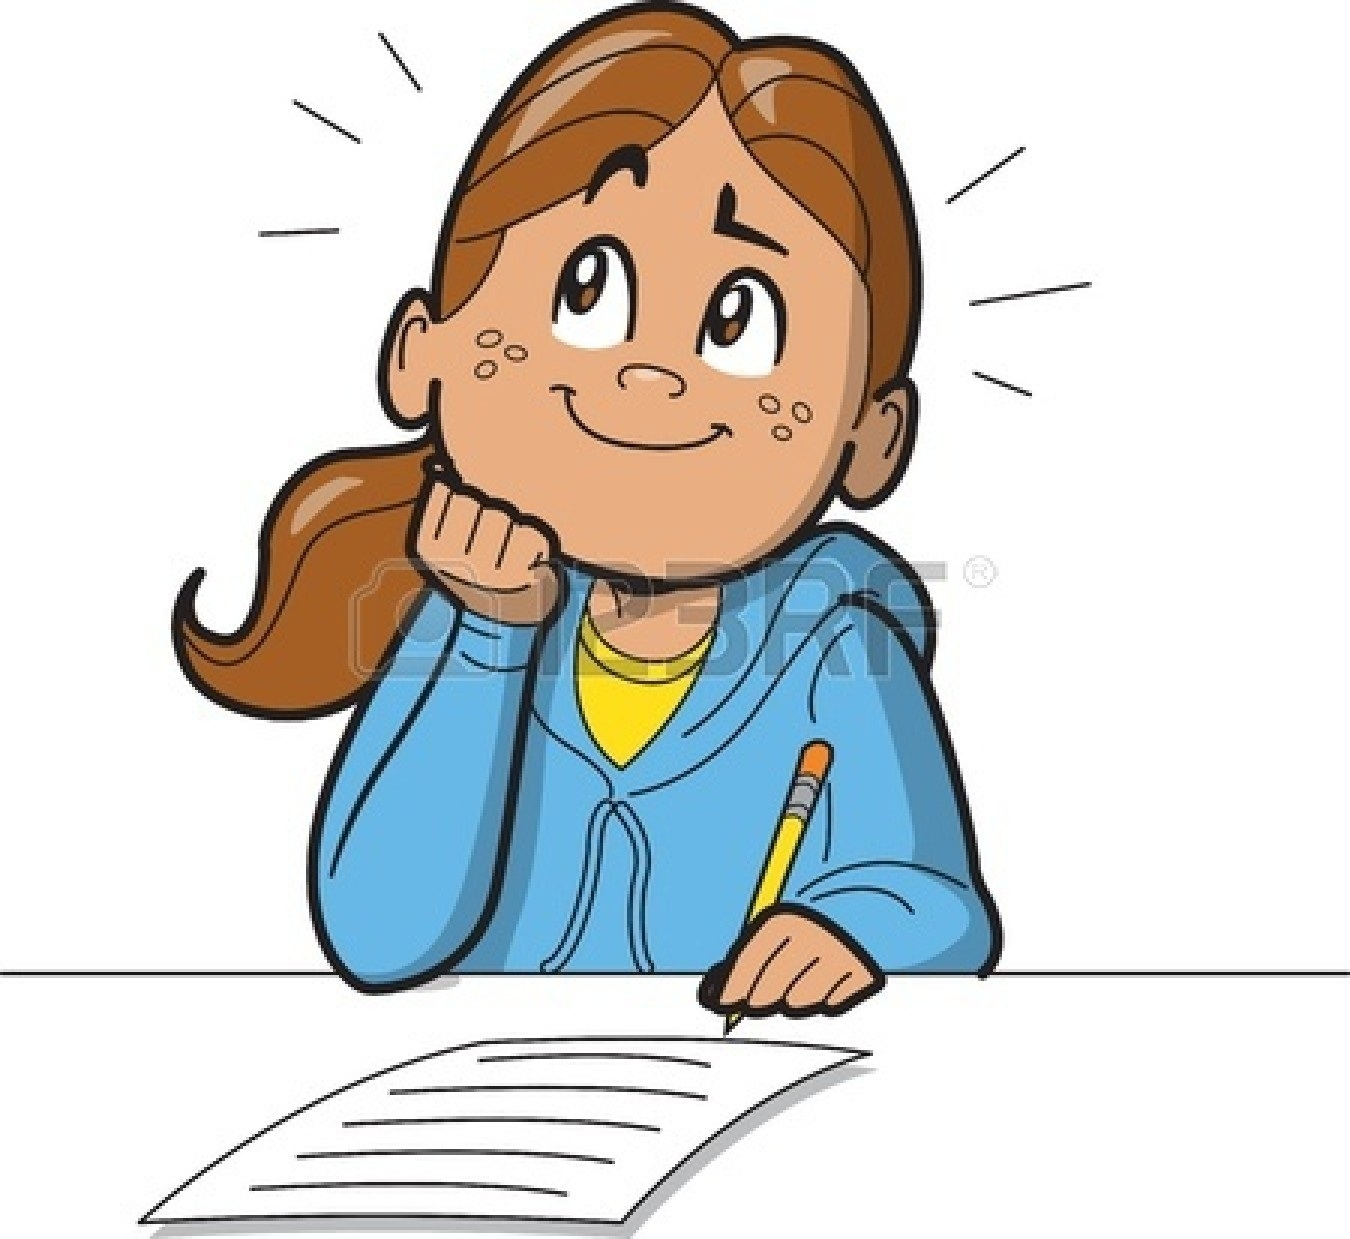 Clipart writing image graphic freeuse library Girl Writing Clipart 6 | Clipart Station inside Better Of Girl ... graphic freeuse library